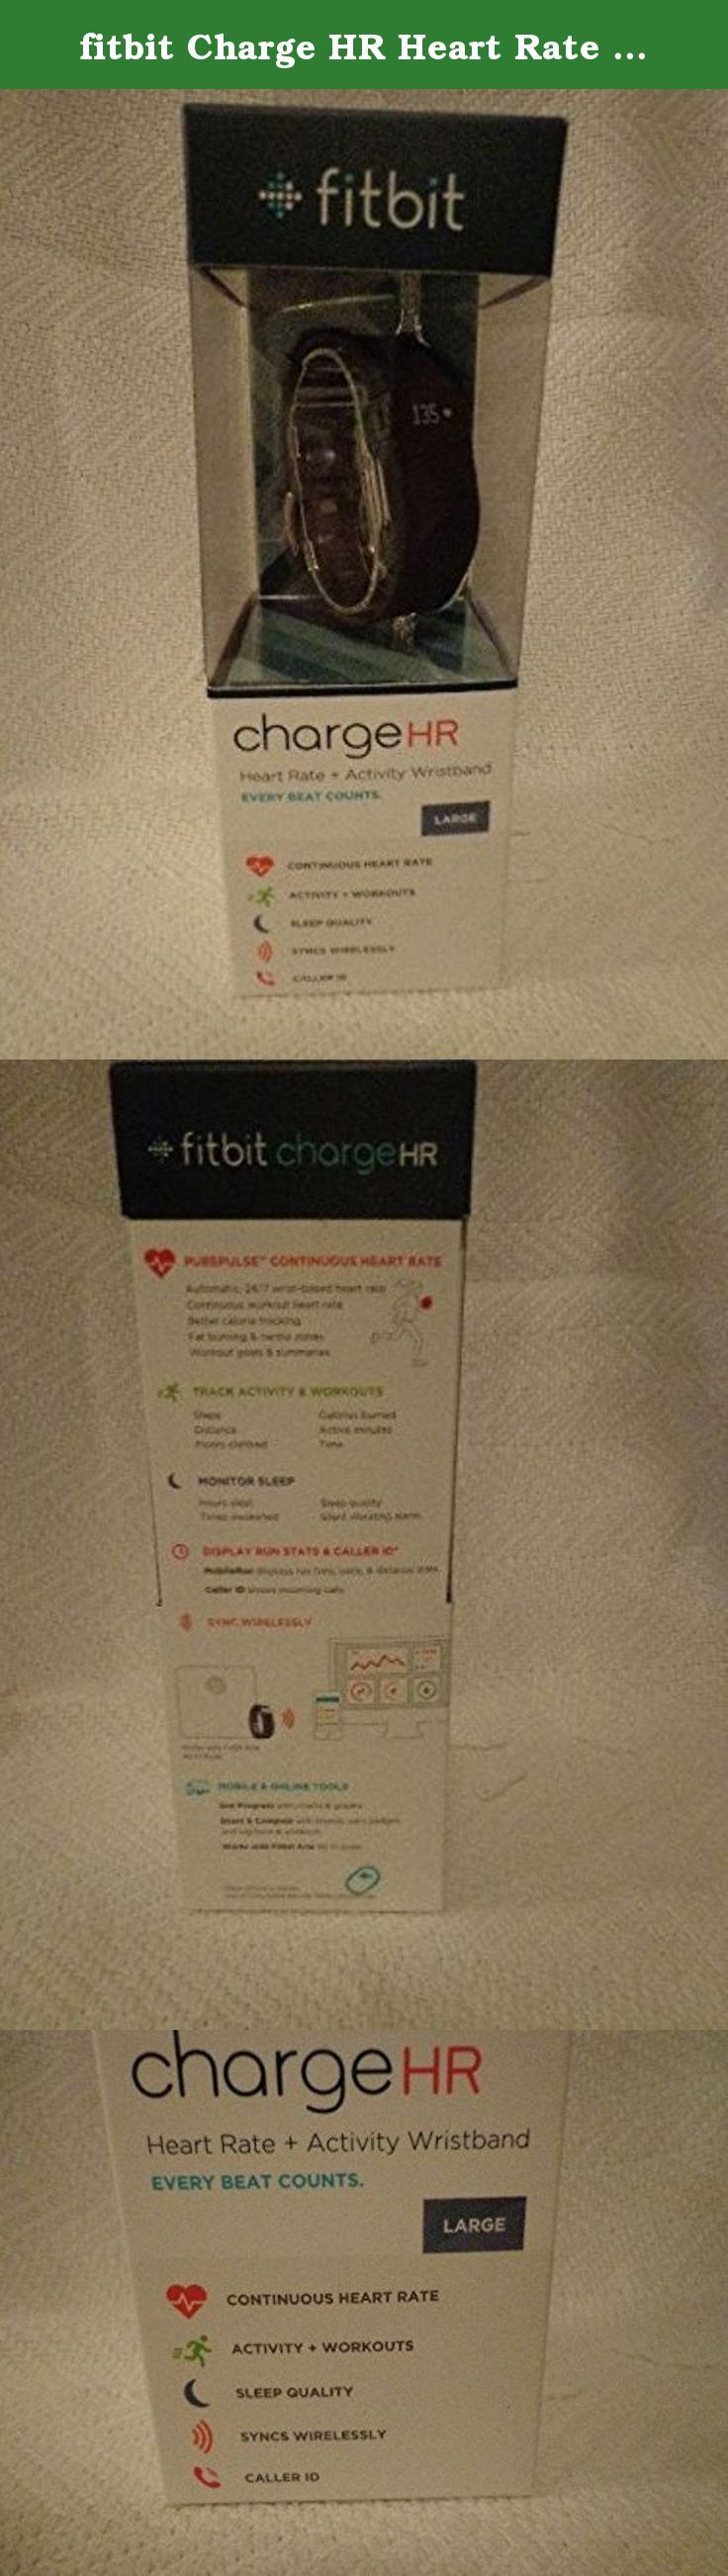 fitbit Charge HR Heart Rate + Activity Wristband - Black Size Large. Fitbit Charge HRBlack Size LargeRetail $149.95+tax Heart Rate+Activity WristbandTracks continuous heard rate, all-dayactivity state and sleep. Includes Caller ID. Worldwide Shippingcombined shipping availablewill ship out as soon as payment madeonly ship to address on Paypal accountcheck out my other listings Thanks & Good Luck!! All my items are 100% Authentic or money back! I purchase my items from high-end department...